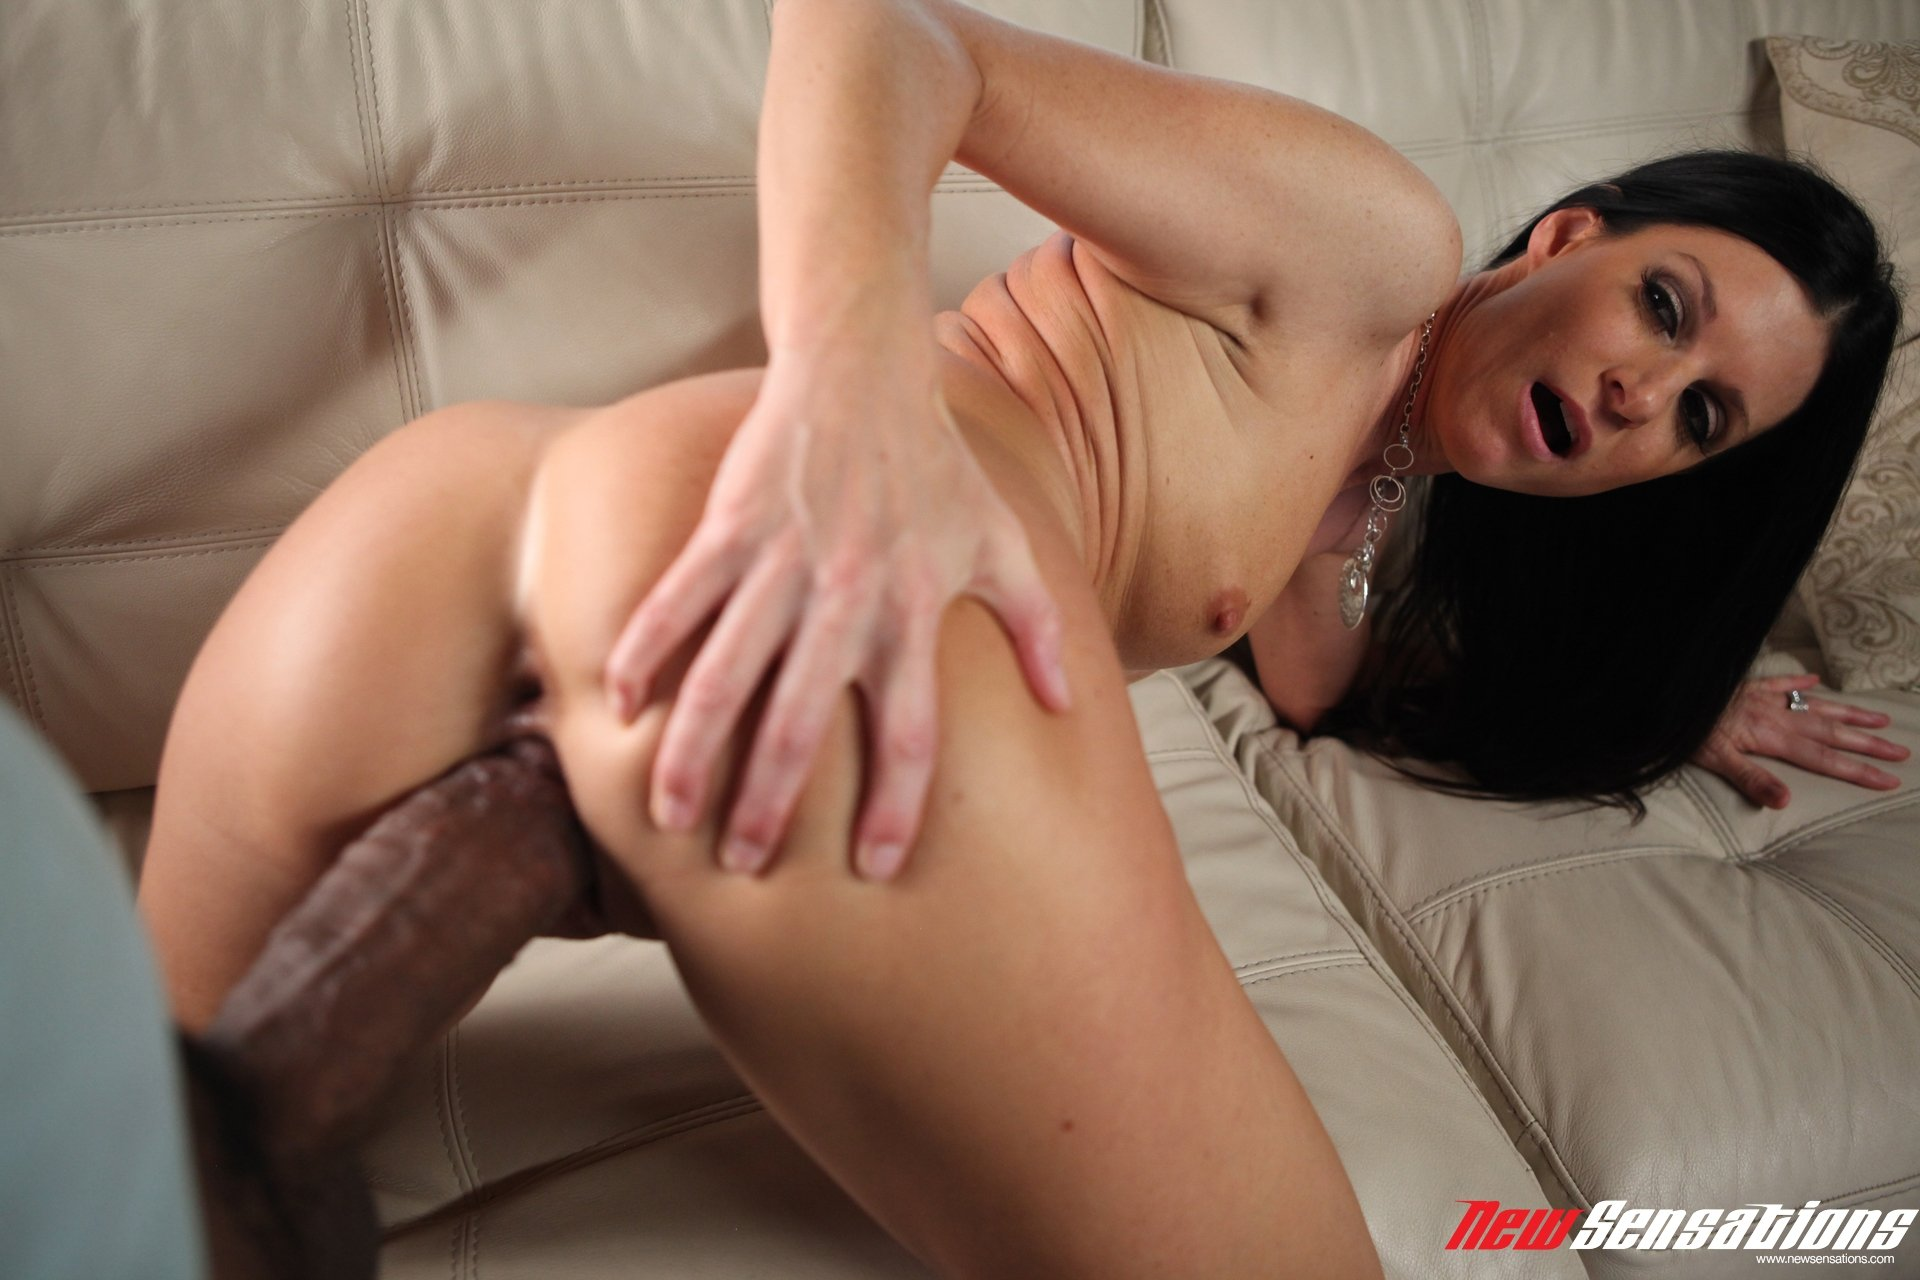 double penetration creampie videos add photo